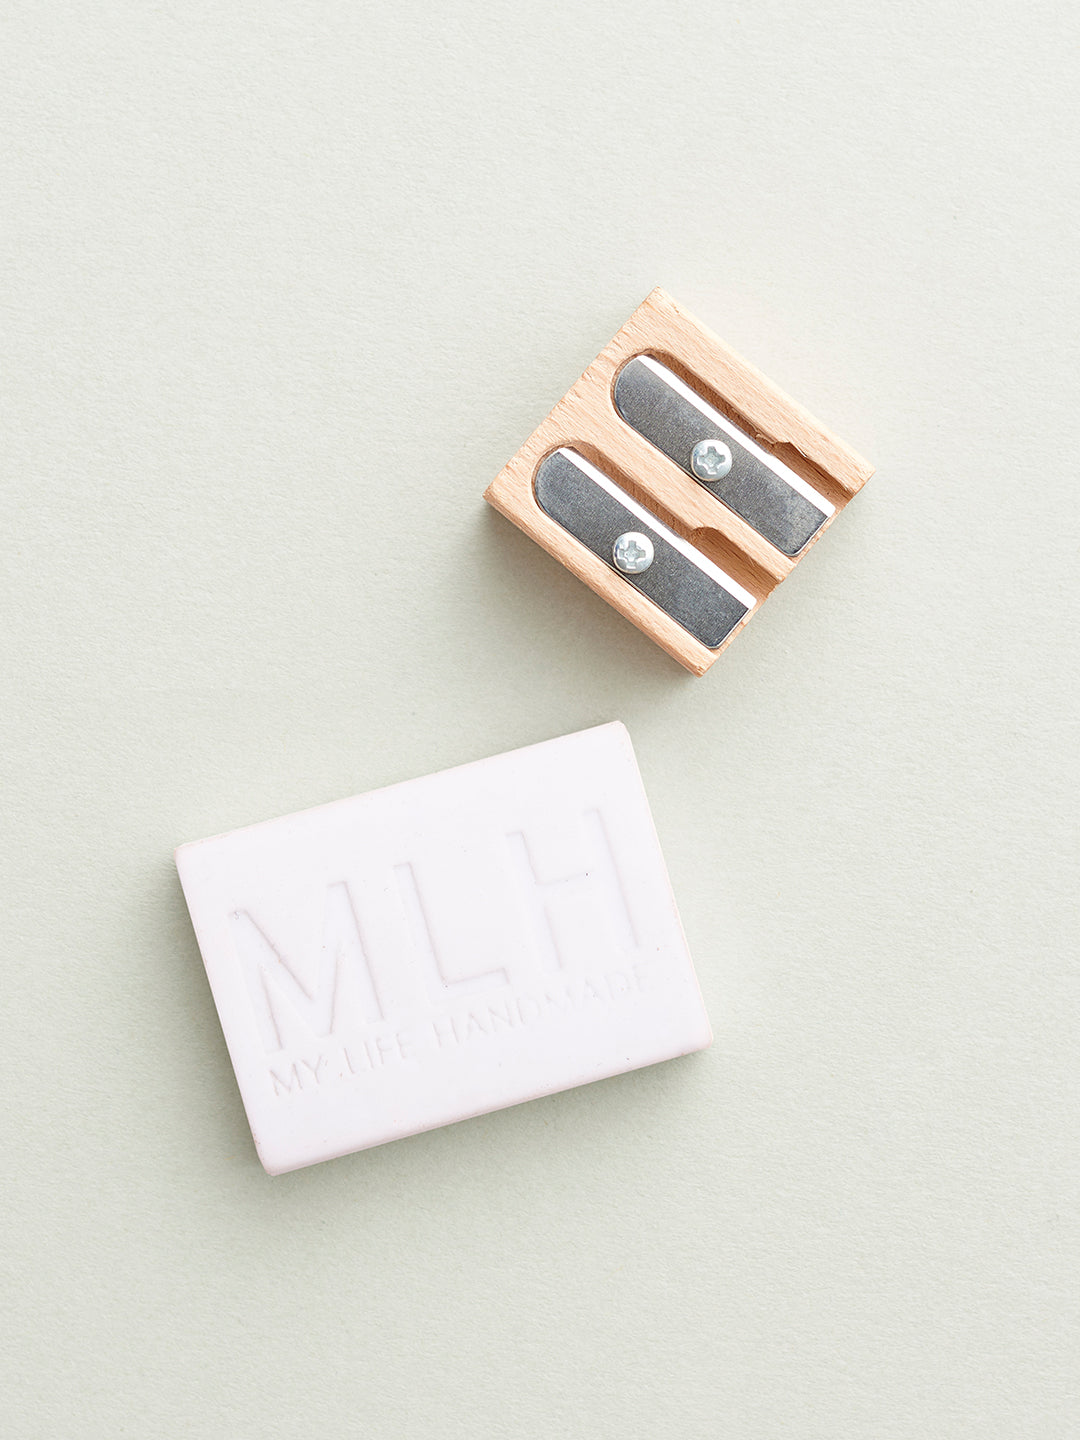 Pencil Sharpener and White Rubber Set